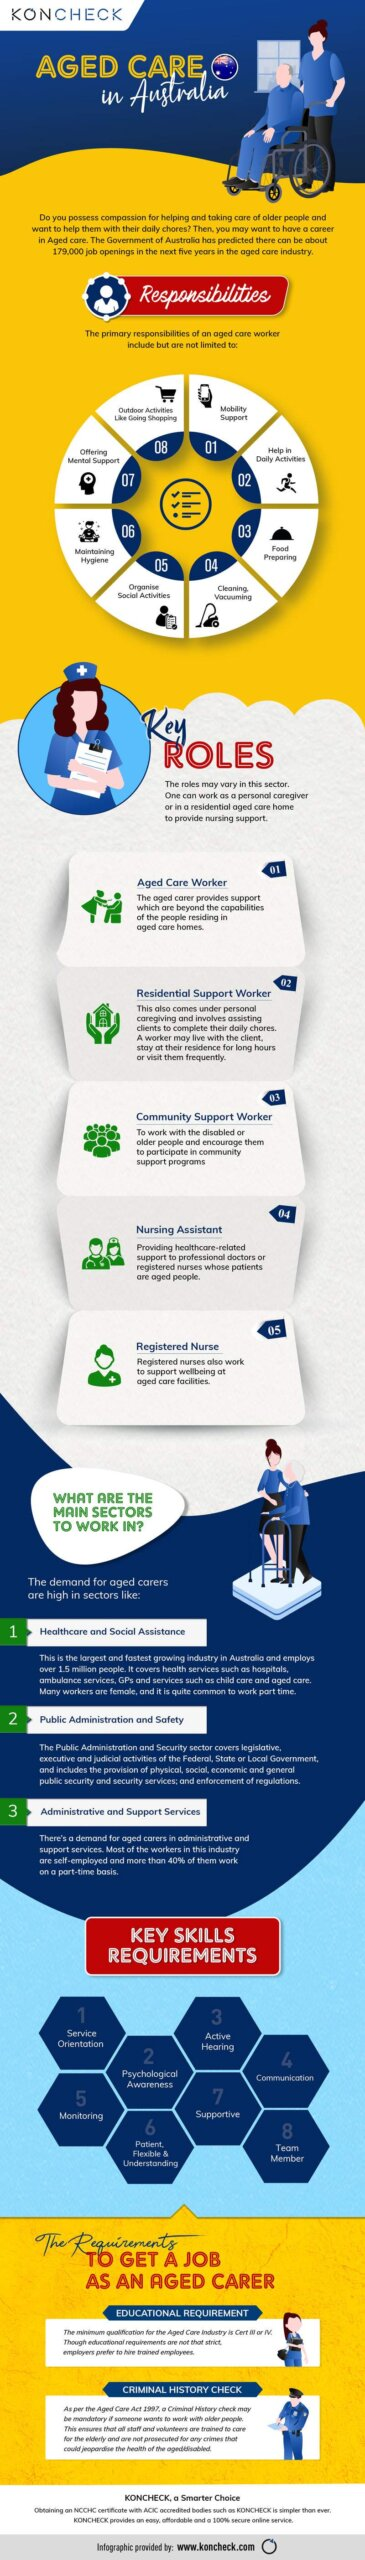 What are the Responsibilities and Requirements to work in the Aged Care Sector